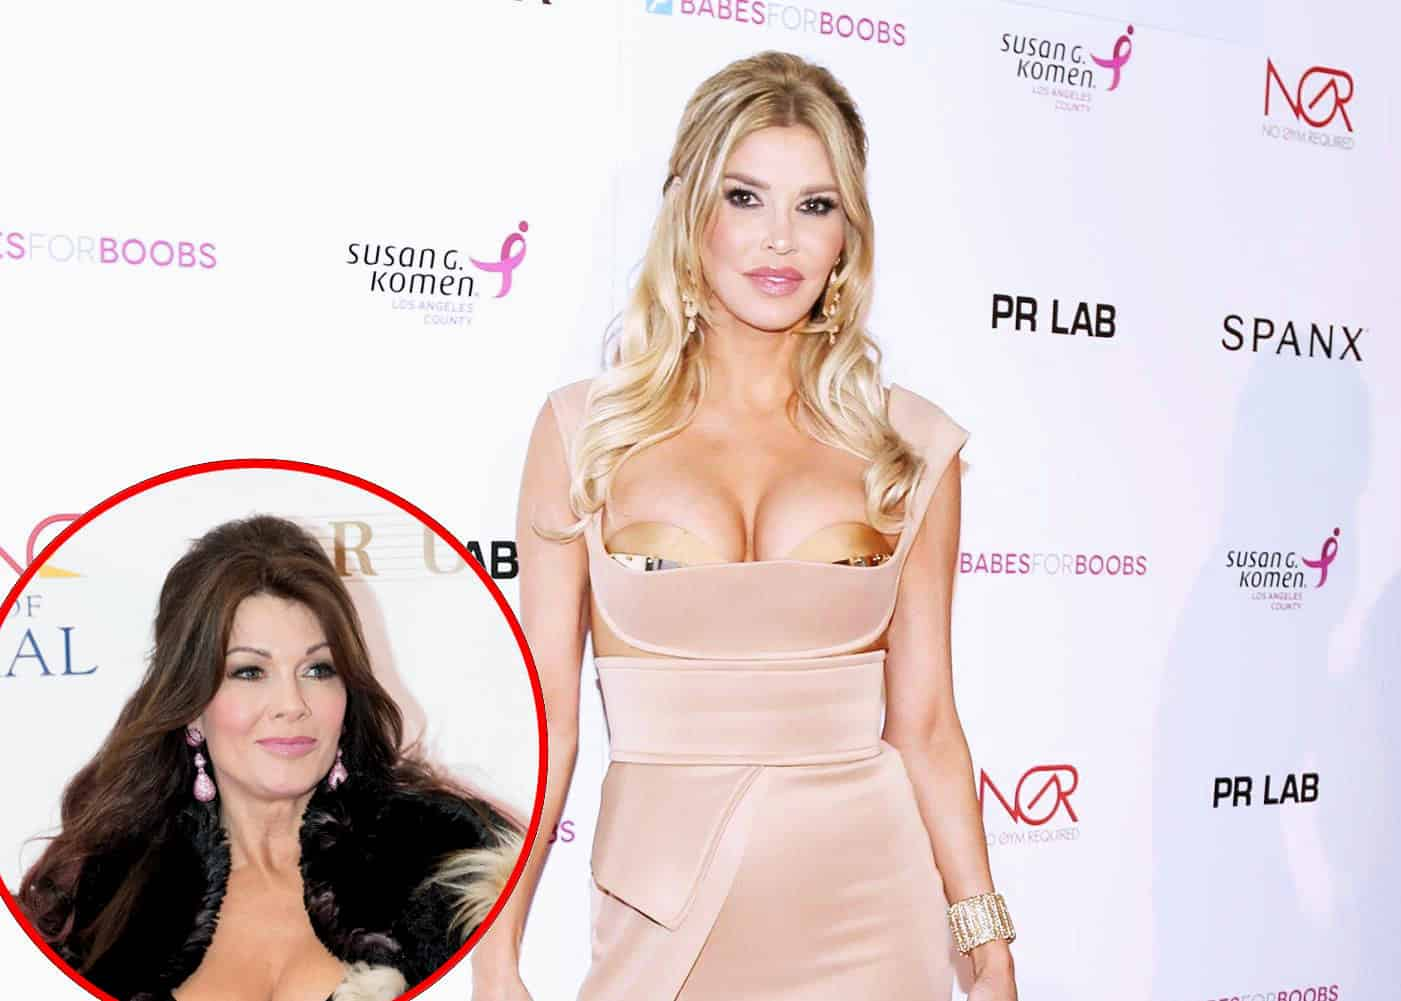 Brandi Glanville Says Lisa Vanderpump Will Play 'Victim' at Reunion, Reveals Which RHOBH Star Apologized to Her & Slams Camille